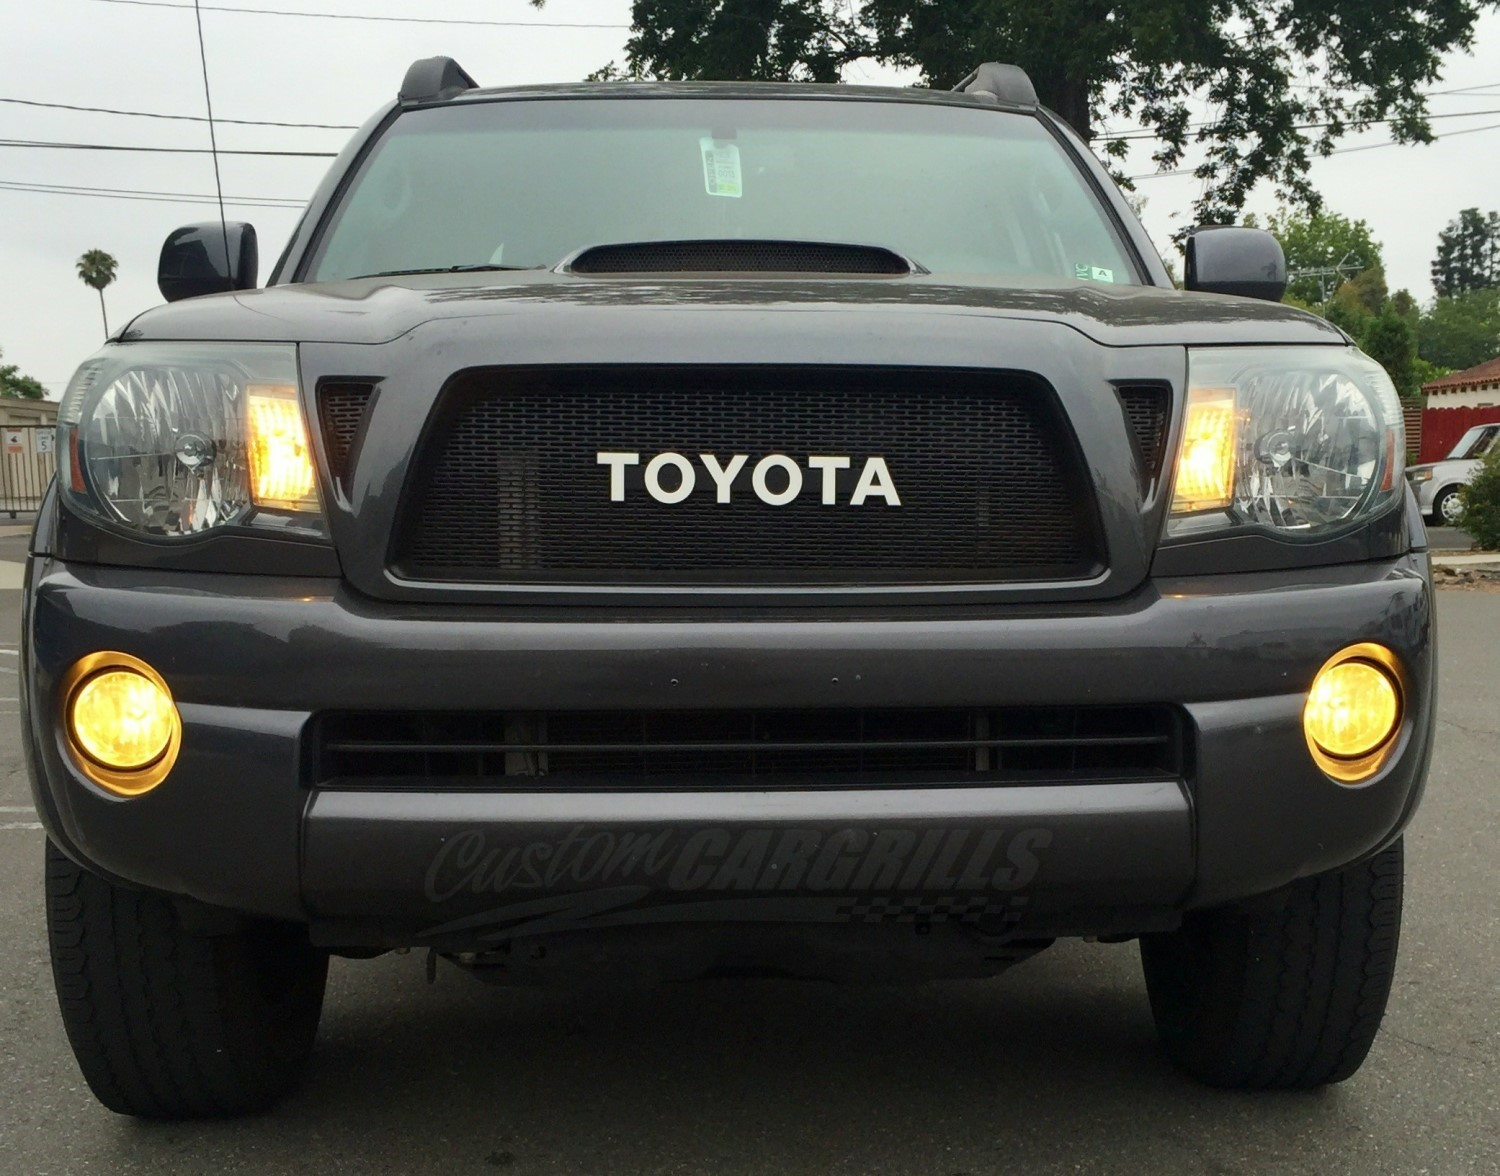 2018 Toyota Tacoma Spec >> 2005 11 Toyota Tacoma Mesh Grill Insert By Customcargrills | Autos Post